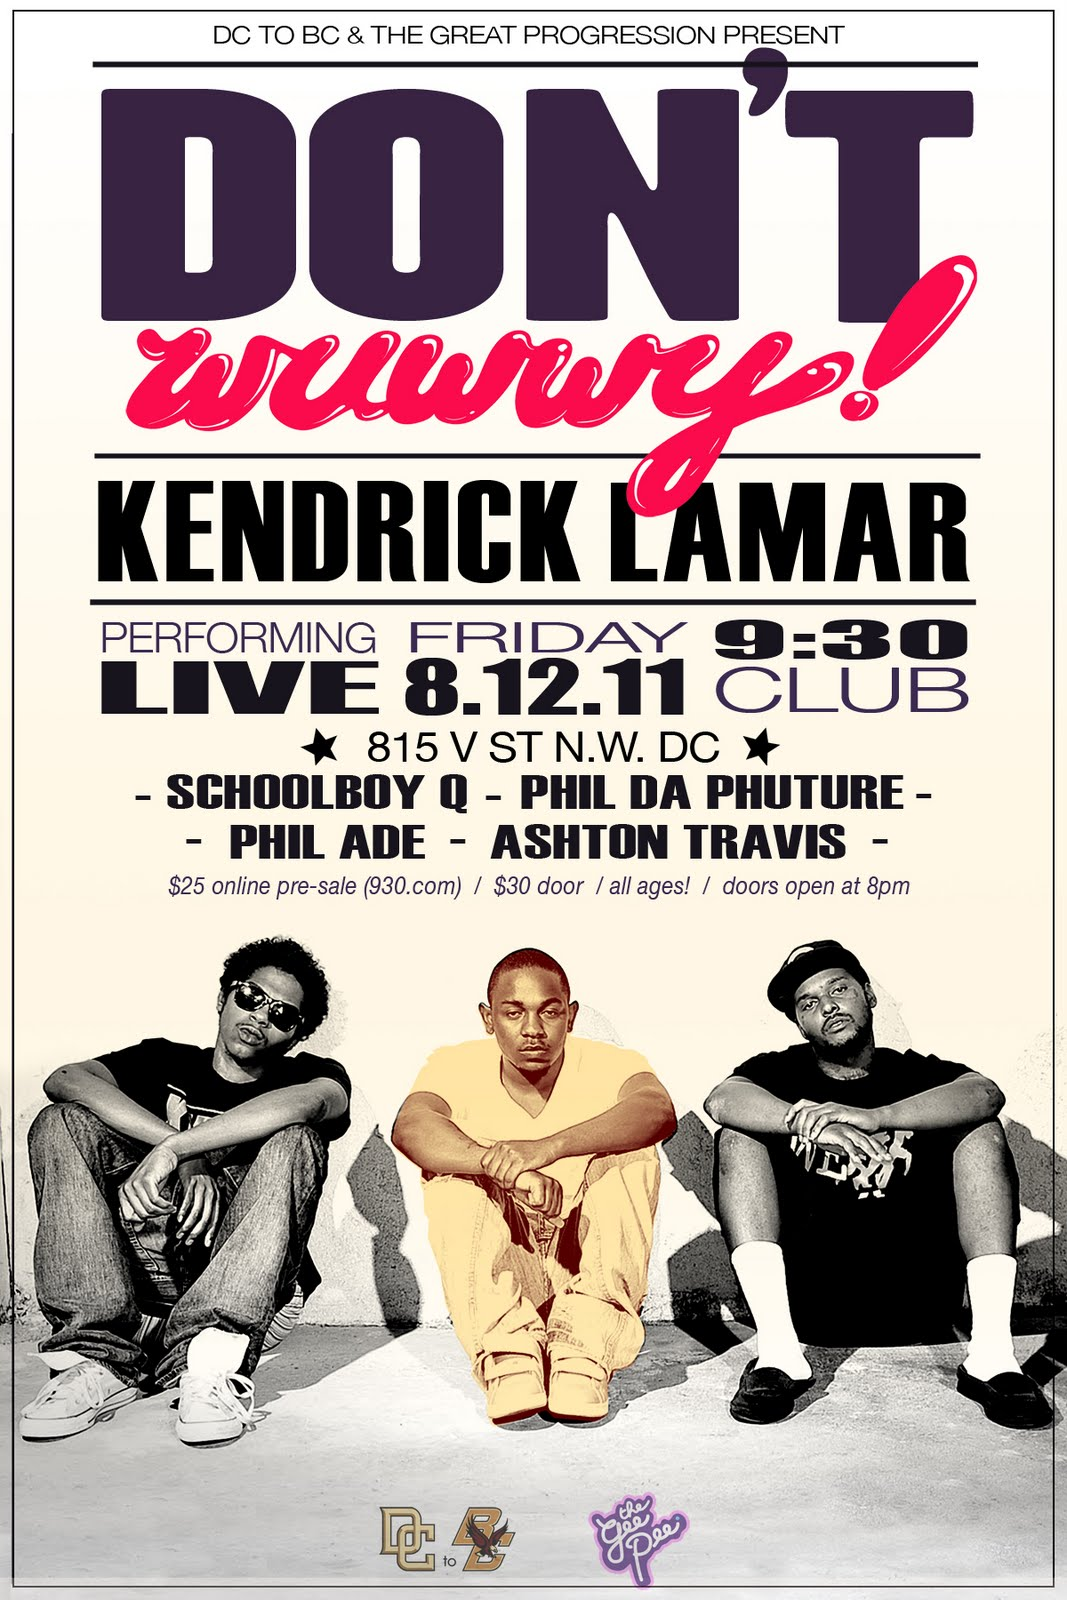 """DCtoBC x The Great Progression - """"Don't Wuwwy: Kendrick Lamar Live in DC!"""""""